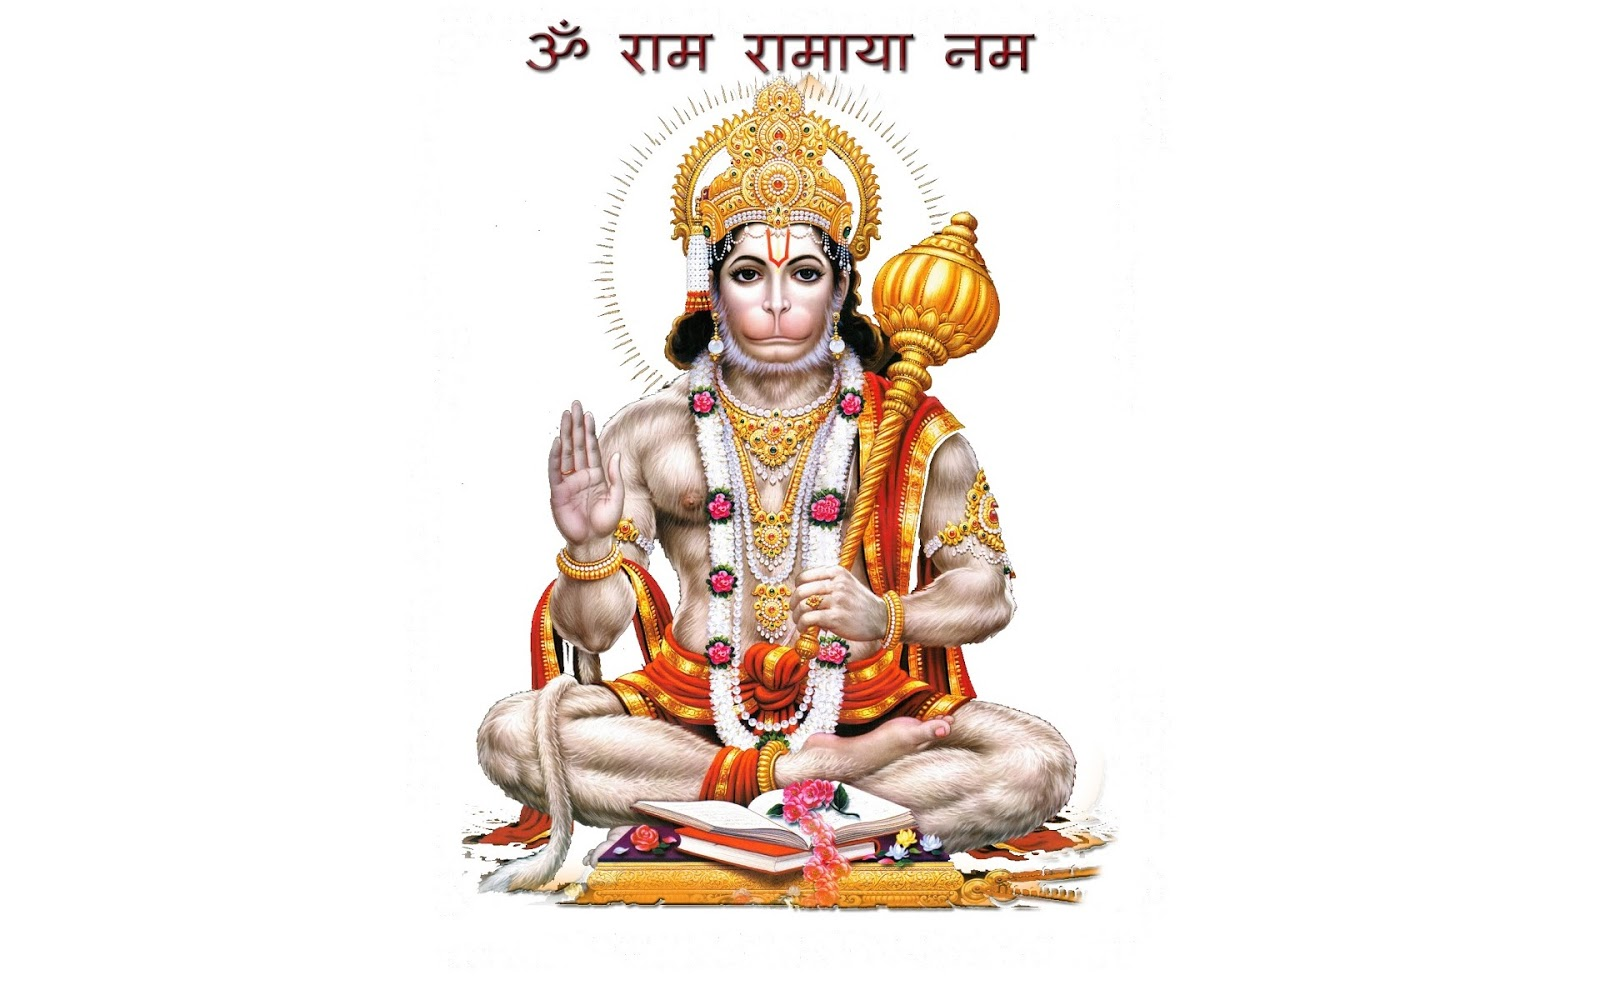 Hanuman Images, Photos, Pictures And Wallpapers 2016